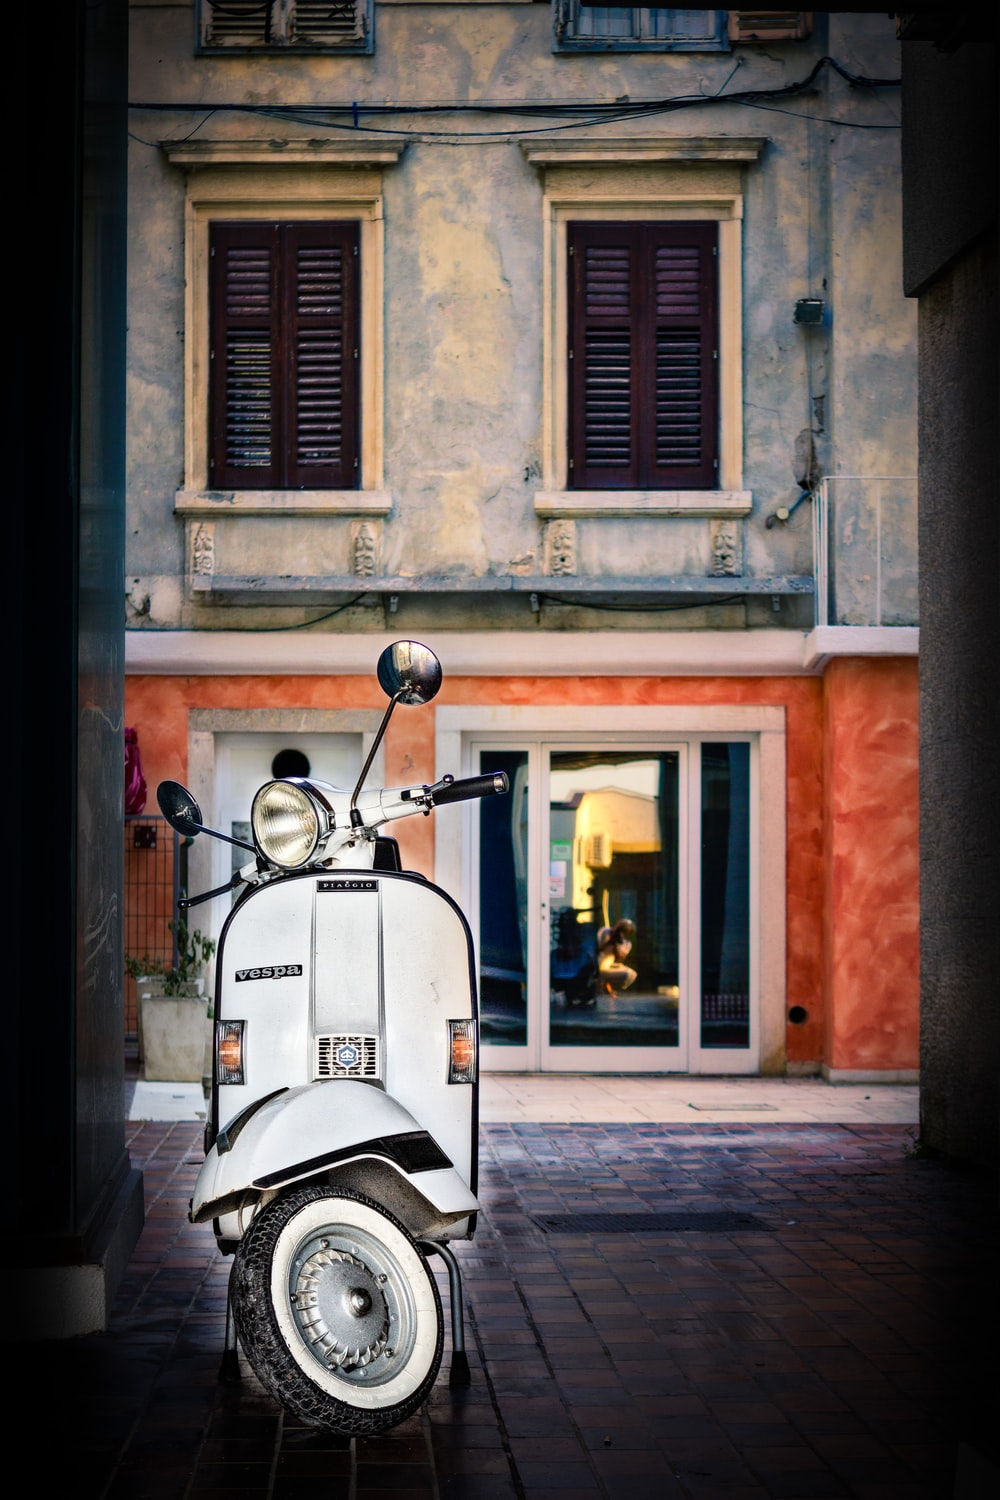 white motor scooter parked near building